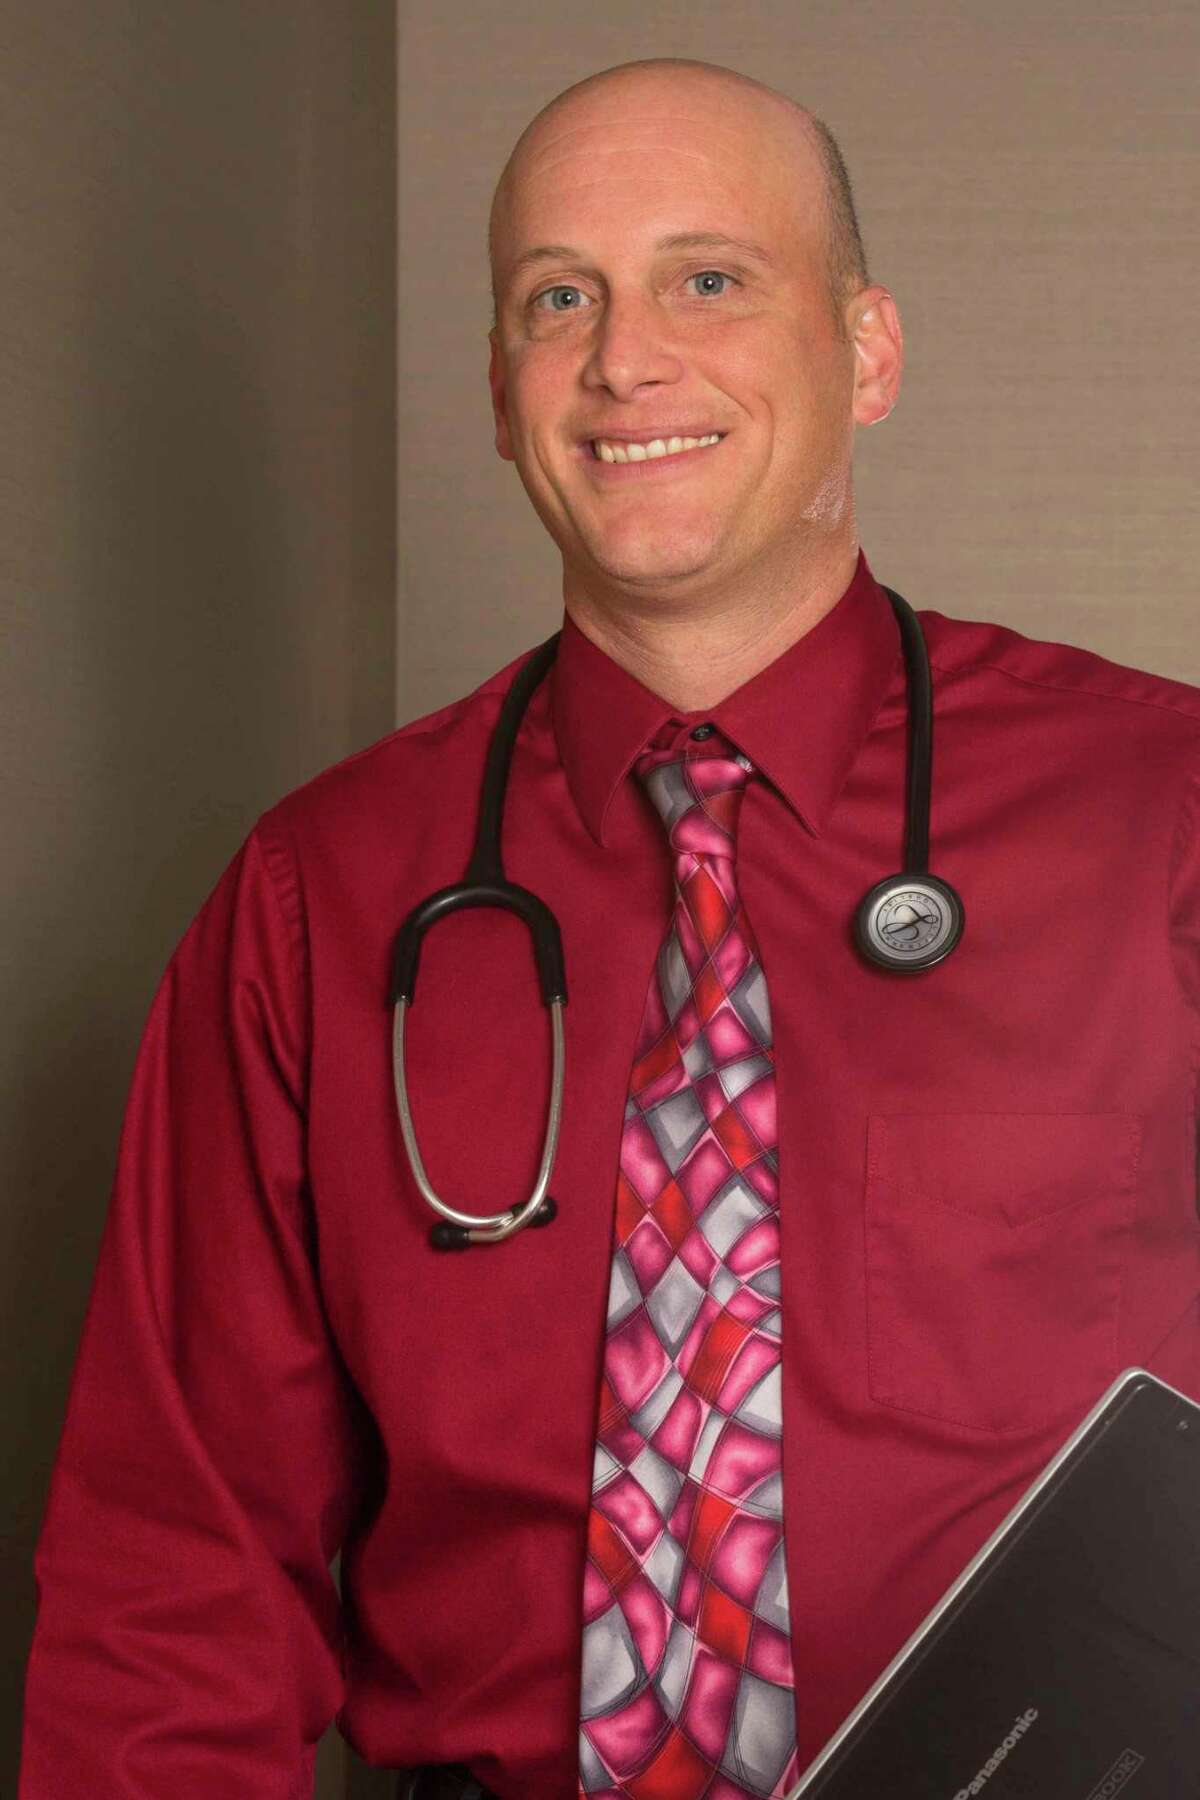 Dr. Brian McComb,Munson Healthcare Manistee Hospital's Chief Medical Officer.